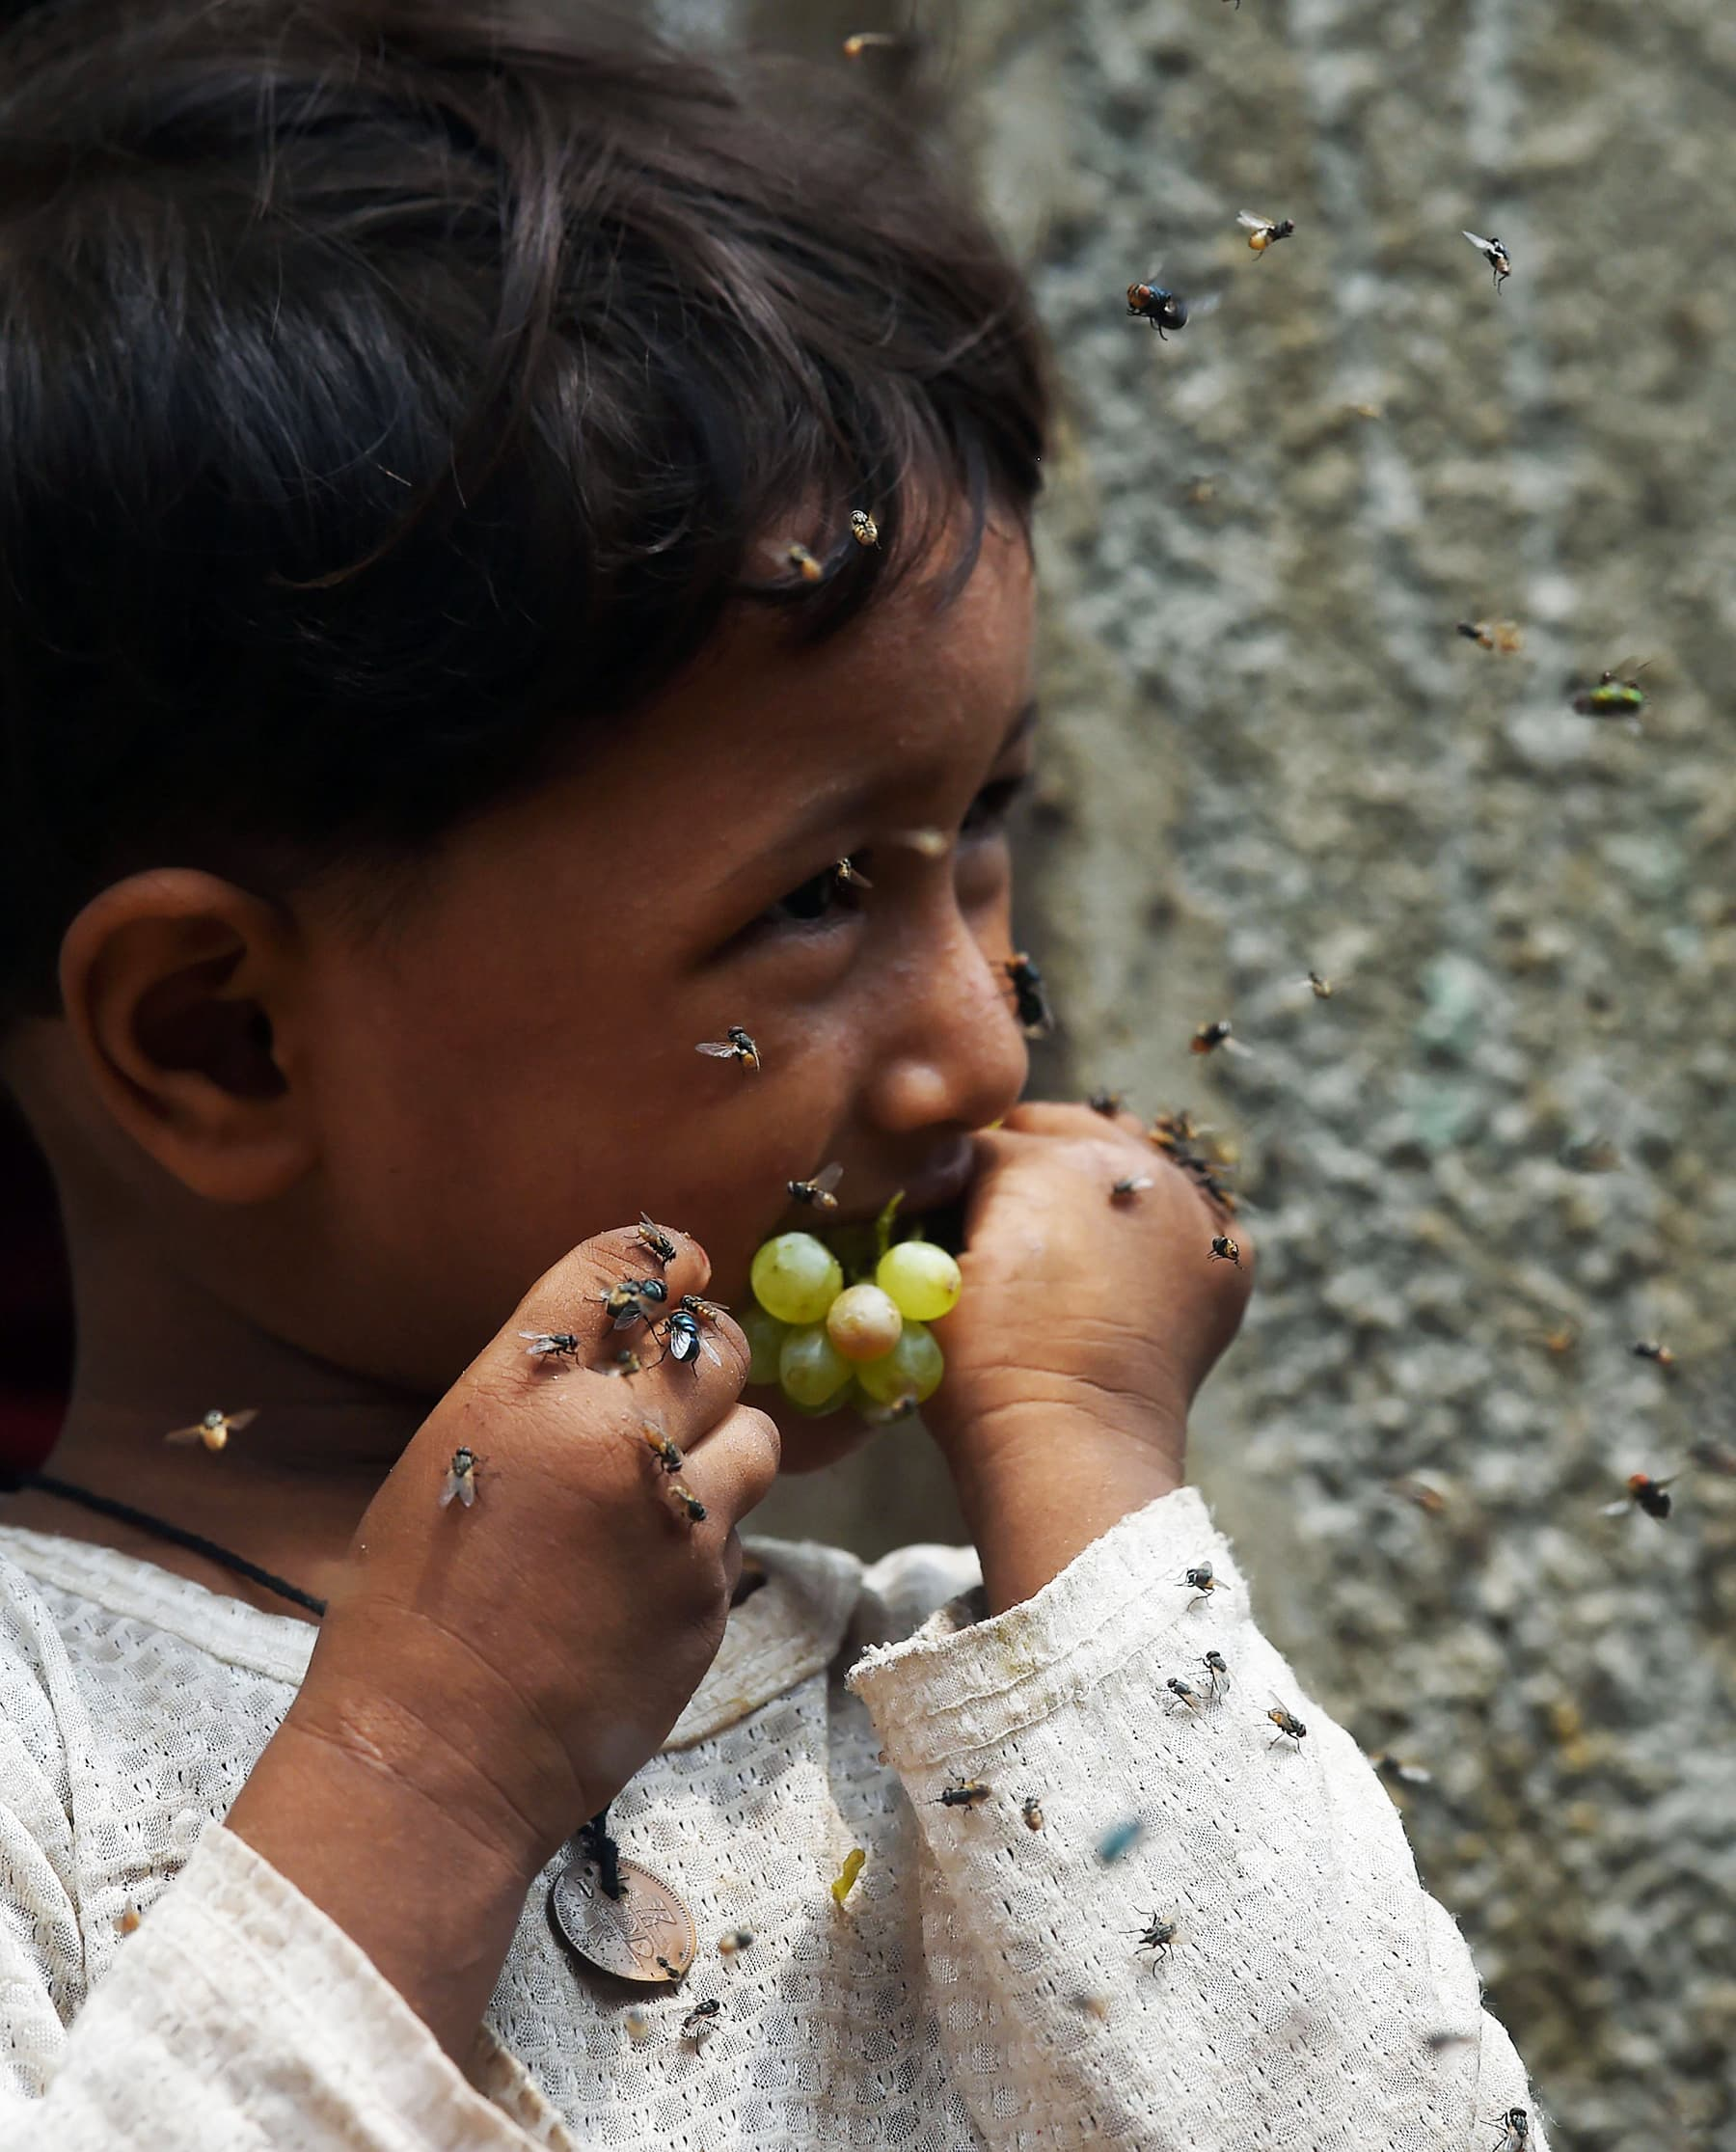 In this picture taken on September 2, a child eats grapes as flies swarm around her in a slum area in Karachi. — AFP